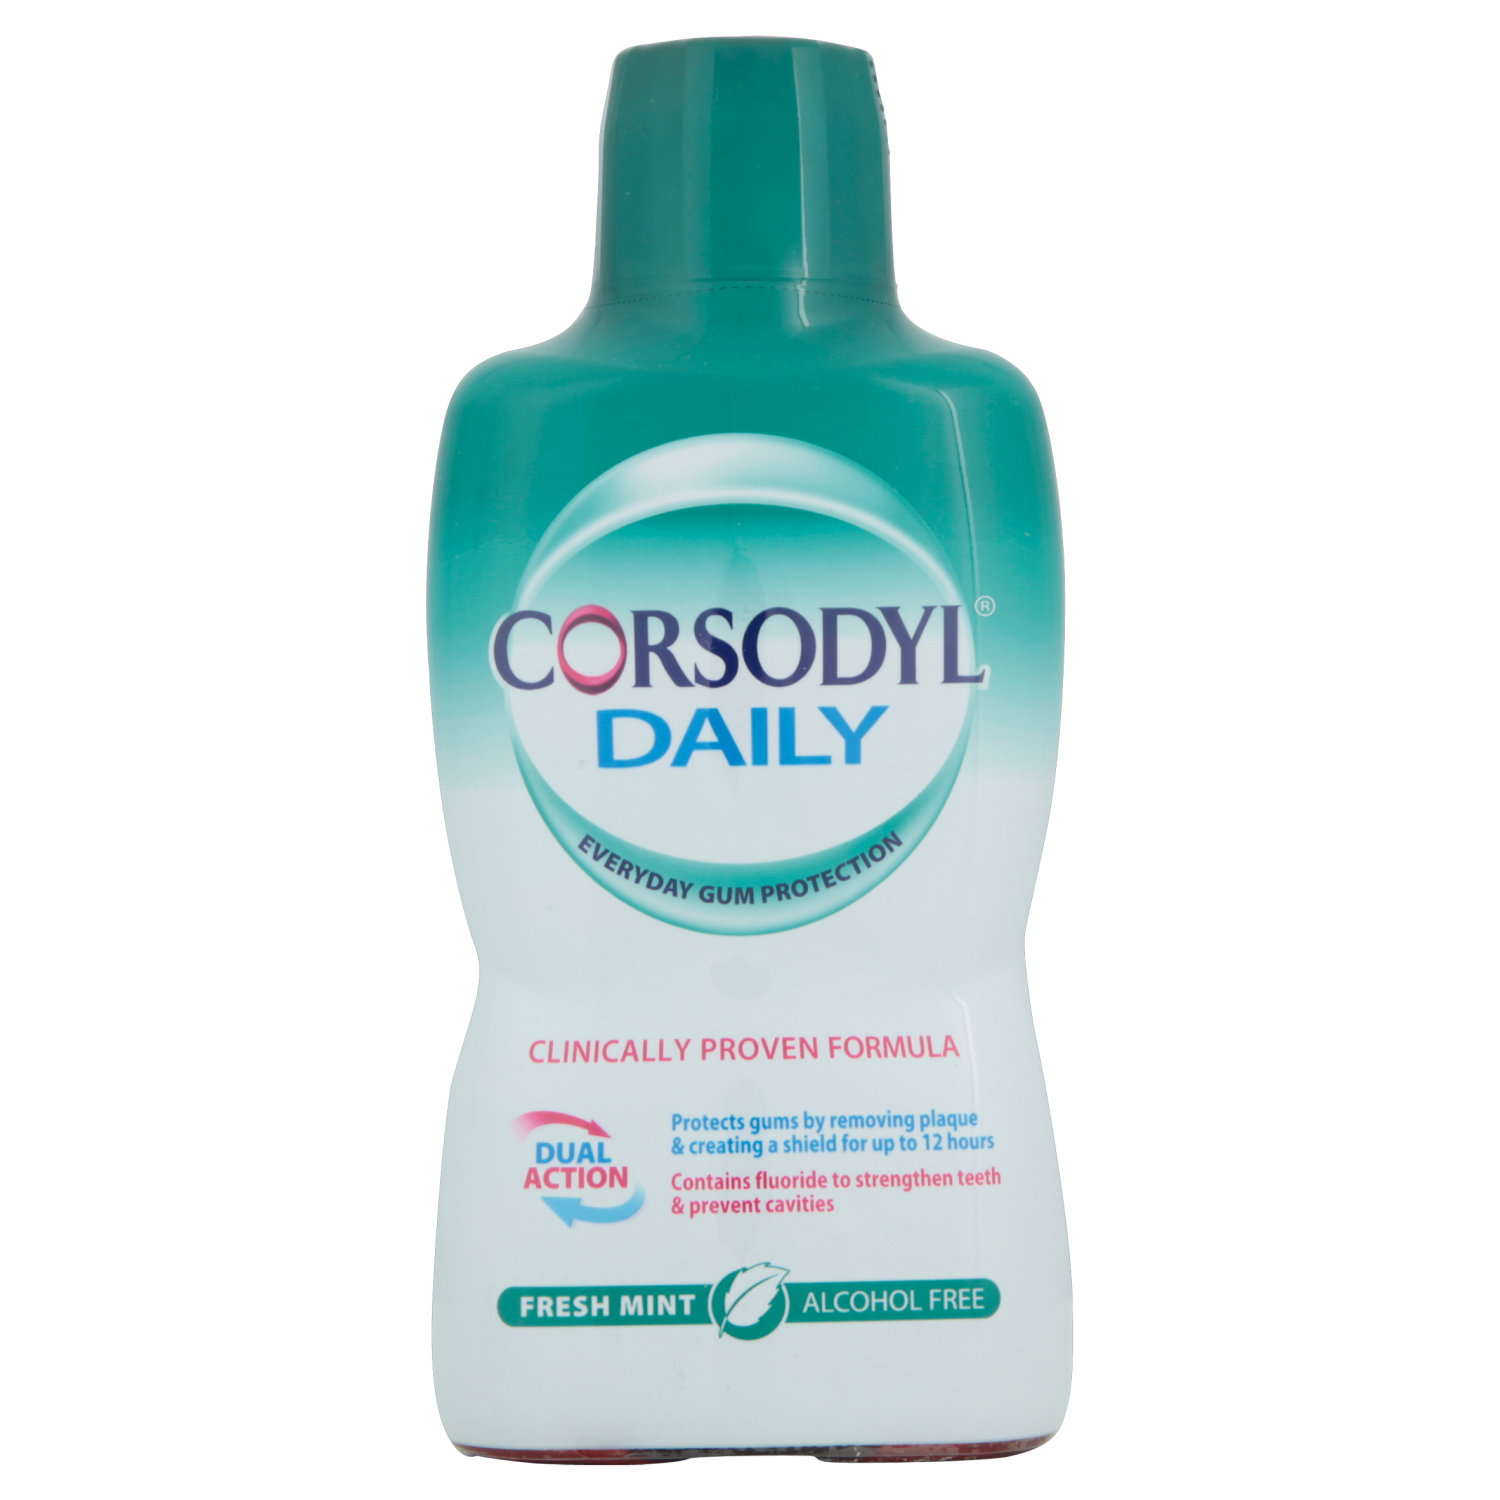 Corsodyl Daily Mouthwash Freshmint Alcohol Free x 500ml